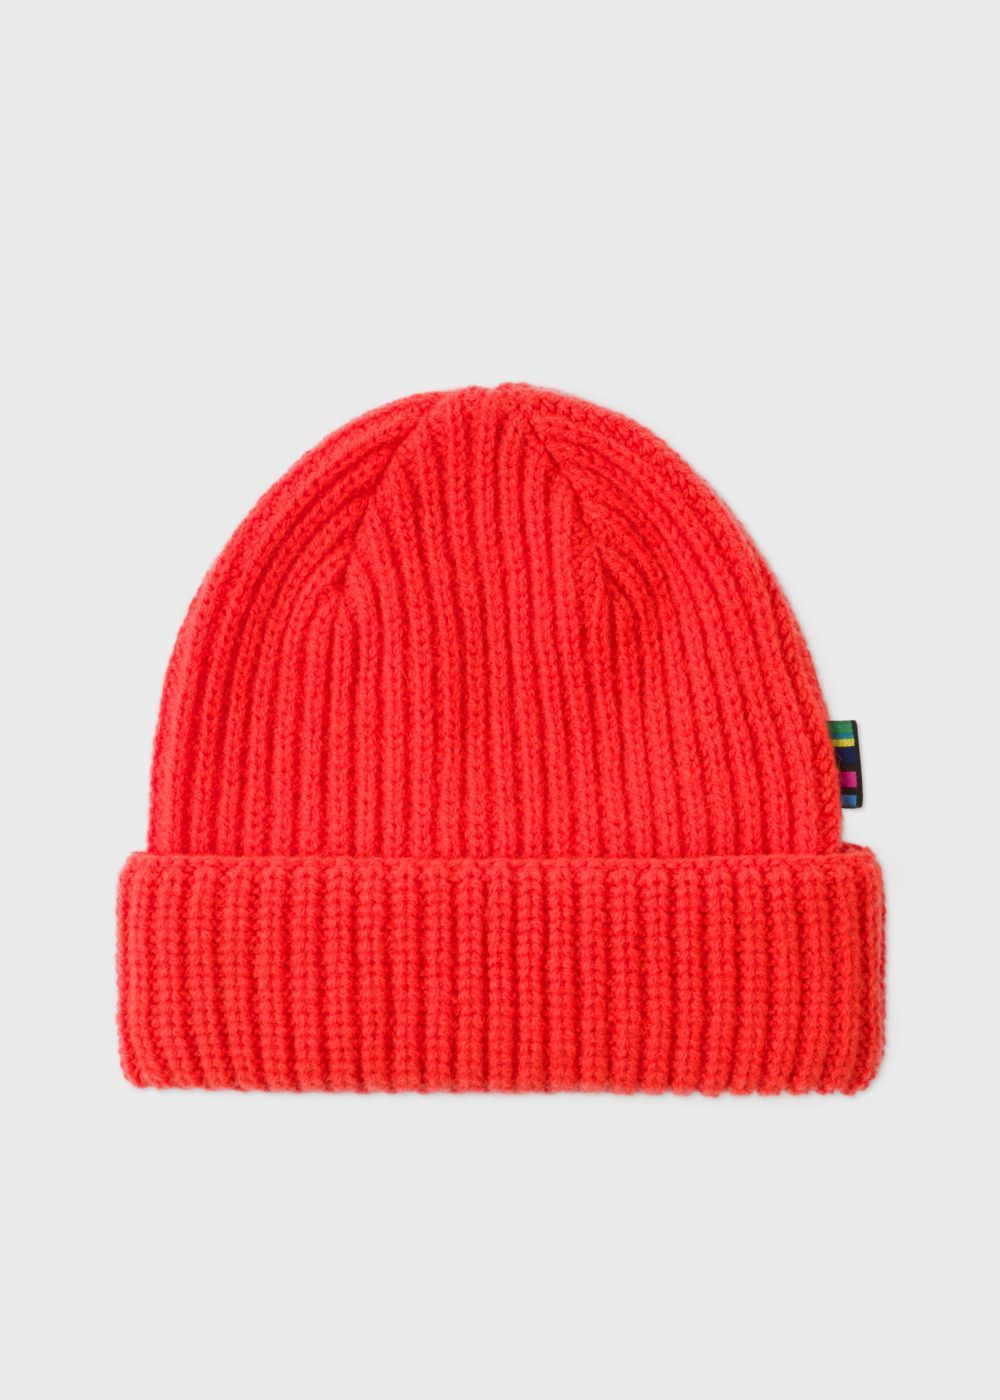 b708d31d1f3 Men s Neon Red Wool Beanie Hat by Paul Smith